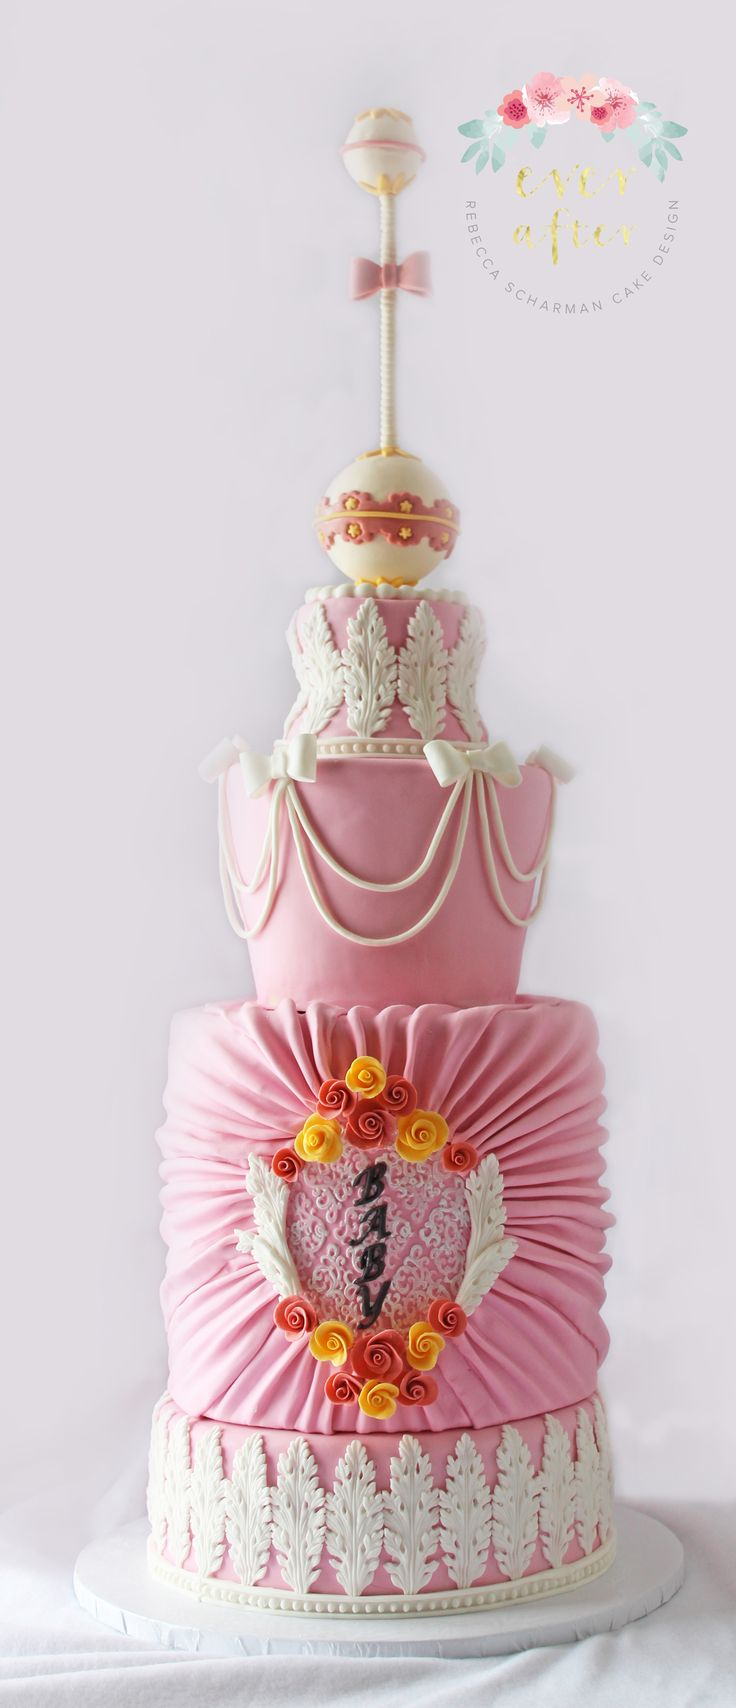 @everaftercake A rococo themed baby shower cake. This was for a very modern baby shower and inspired after one of my favourite cake artists Margaret Braun with the baby rattle topper.